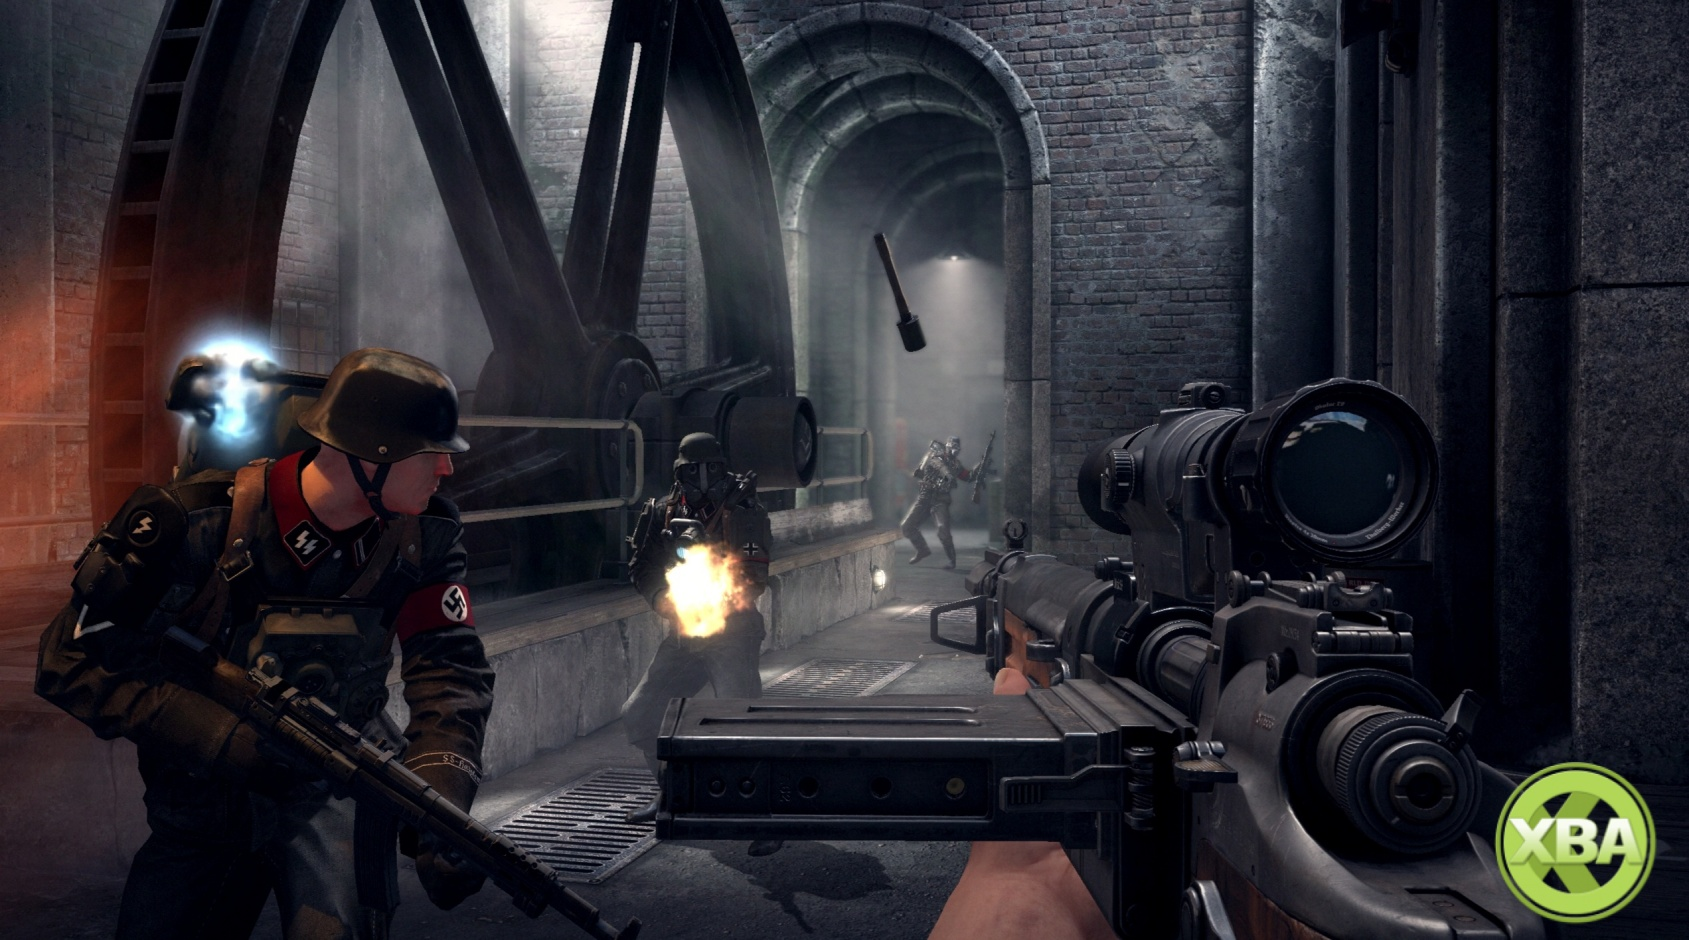 Wolfenstein: The Old Blood Vid Shows Off Around 1 Hour of Gameplay - Xbox  One, Xbox 360 News At XboxAchievements.com